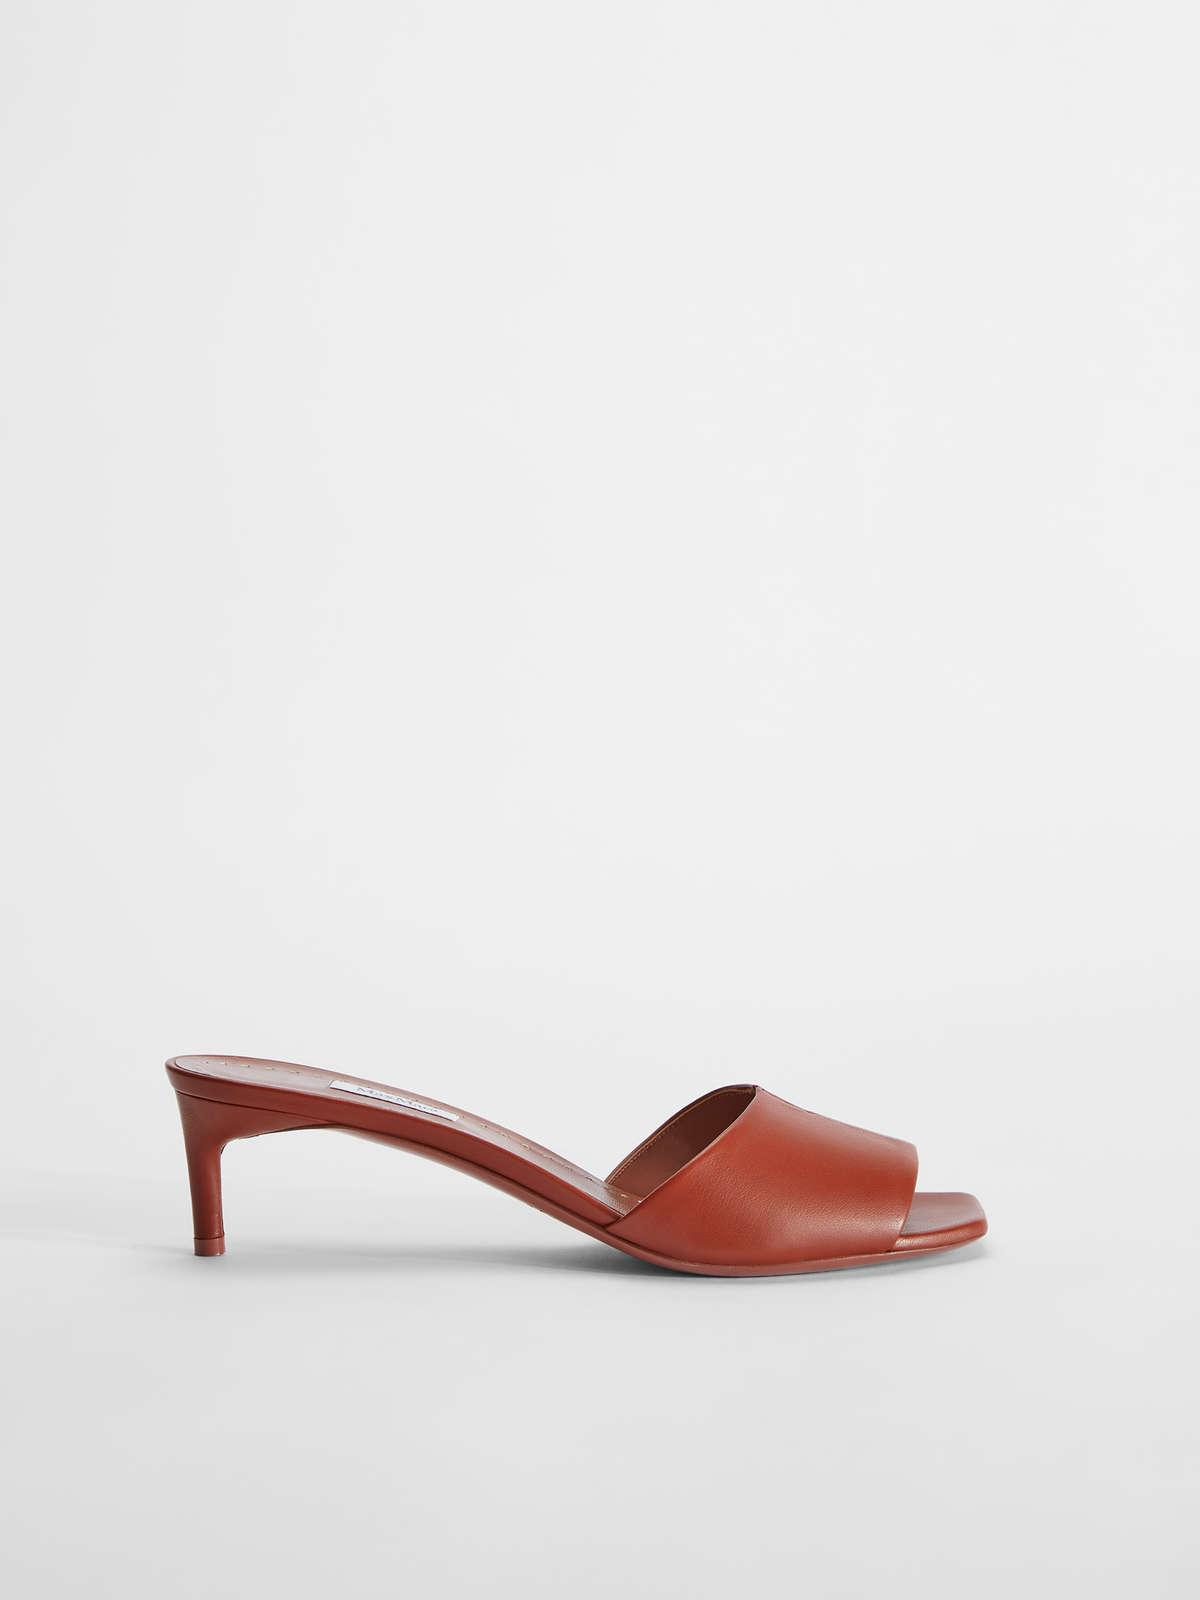 Womens Max Mara Sandals | Nappa Leather Sandals Antique Rose